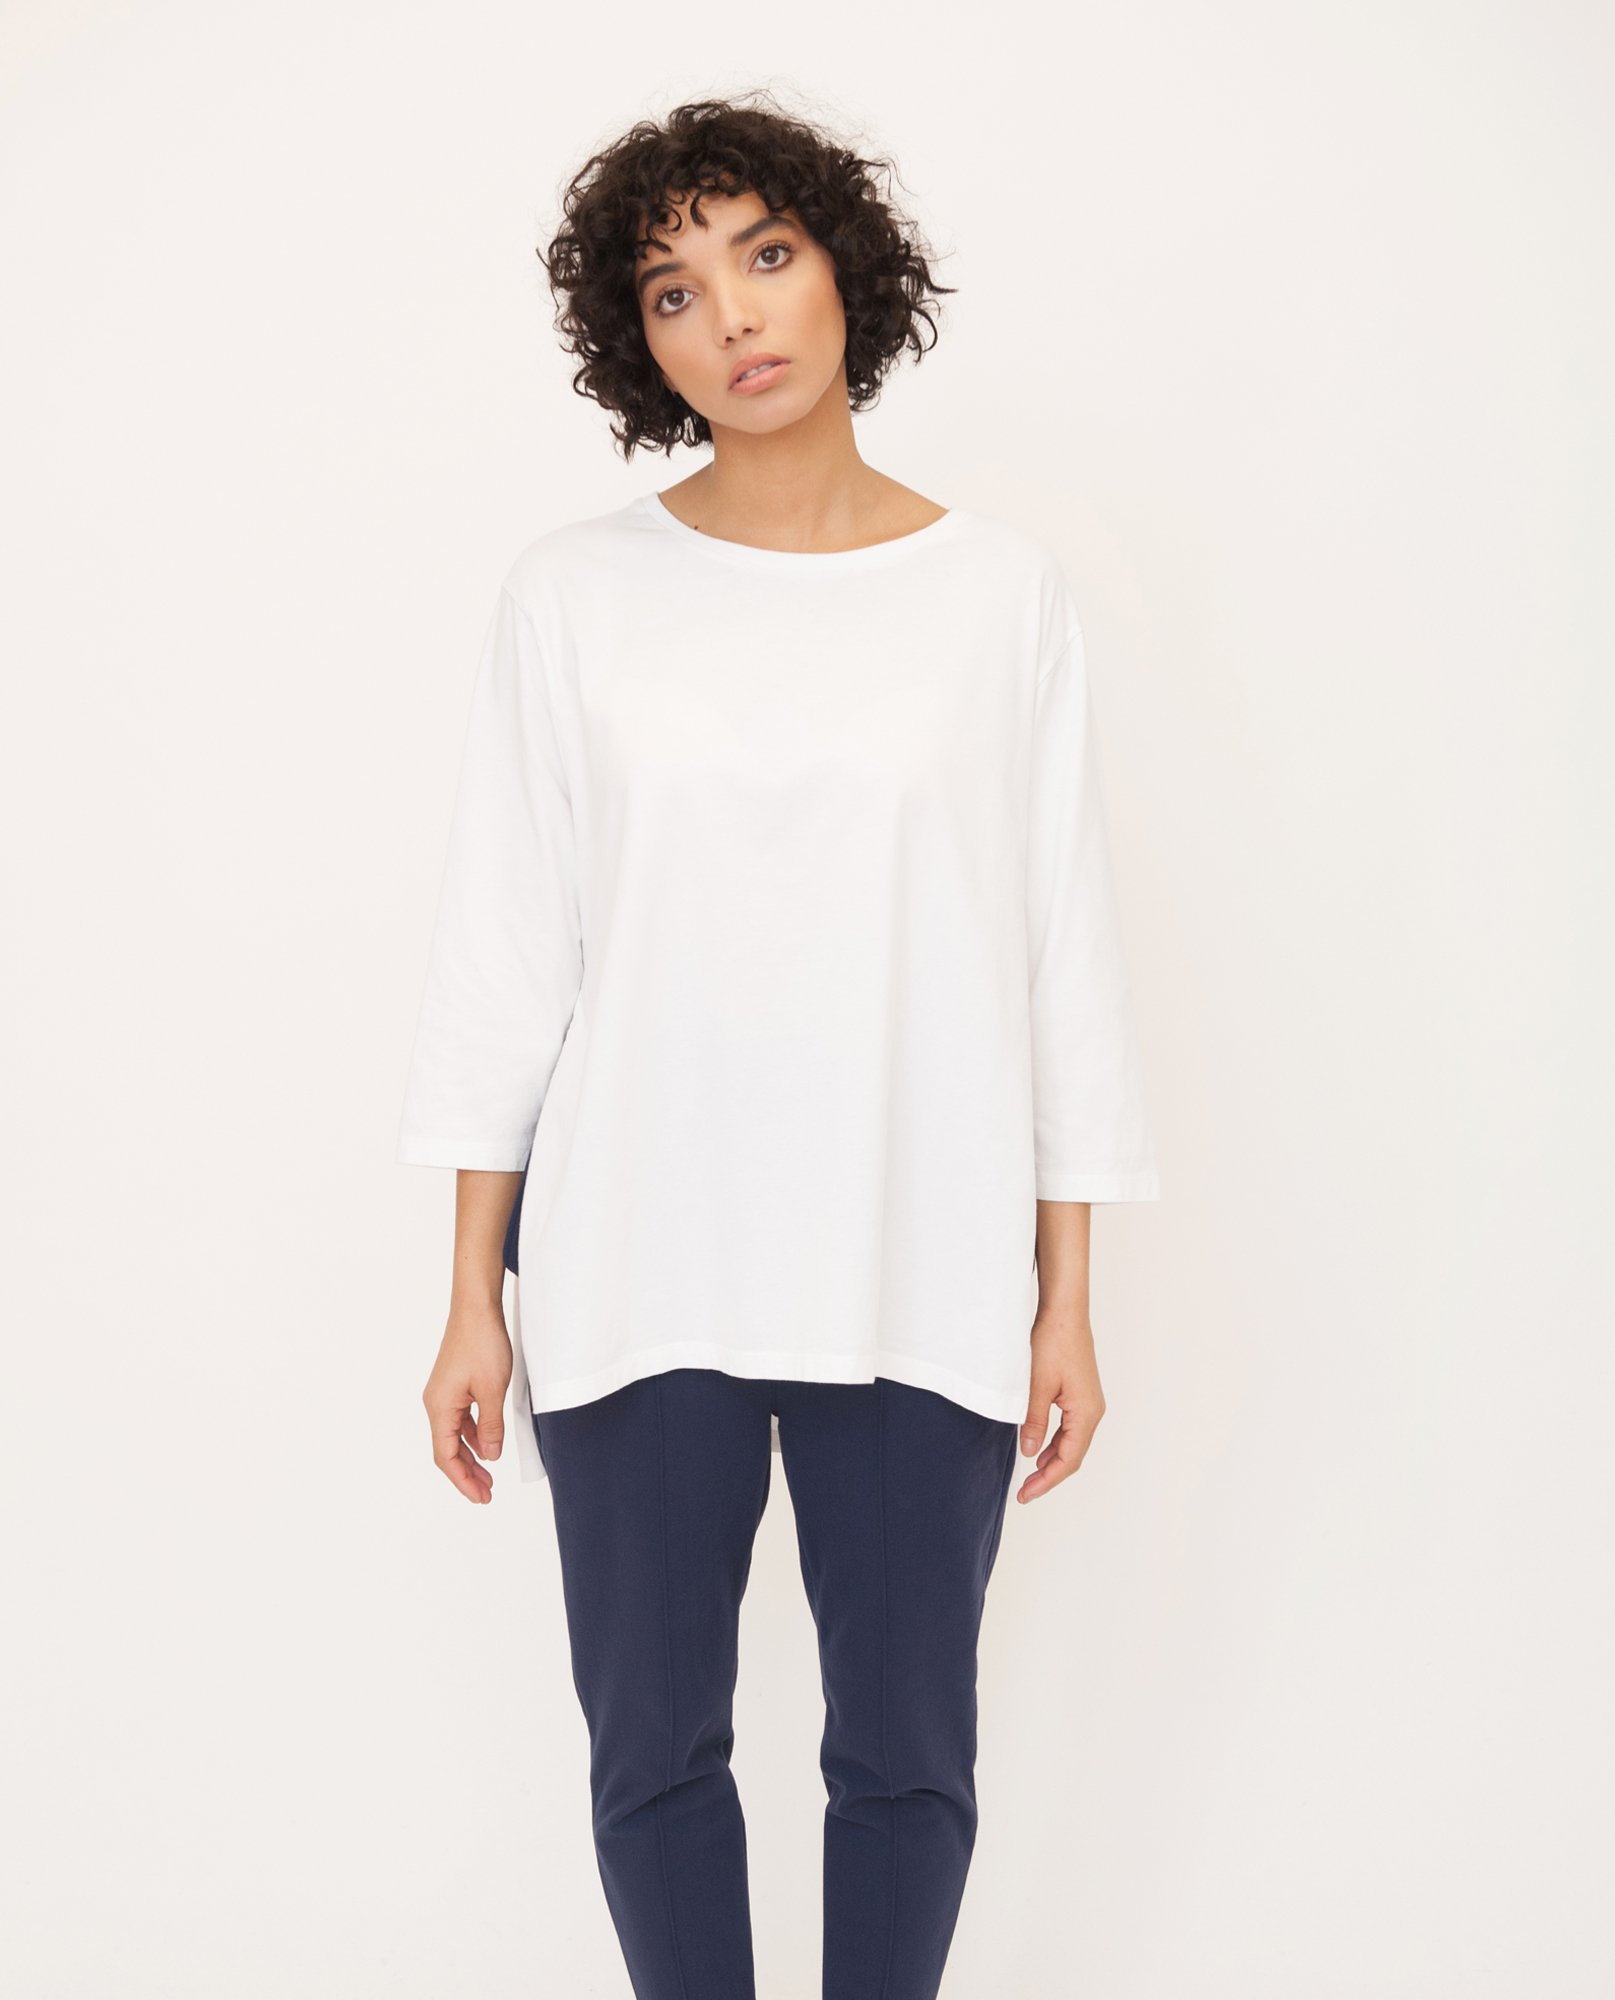 HATTIE Organic Cotton Top In Off White from Beaumont Organic